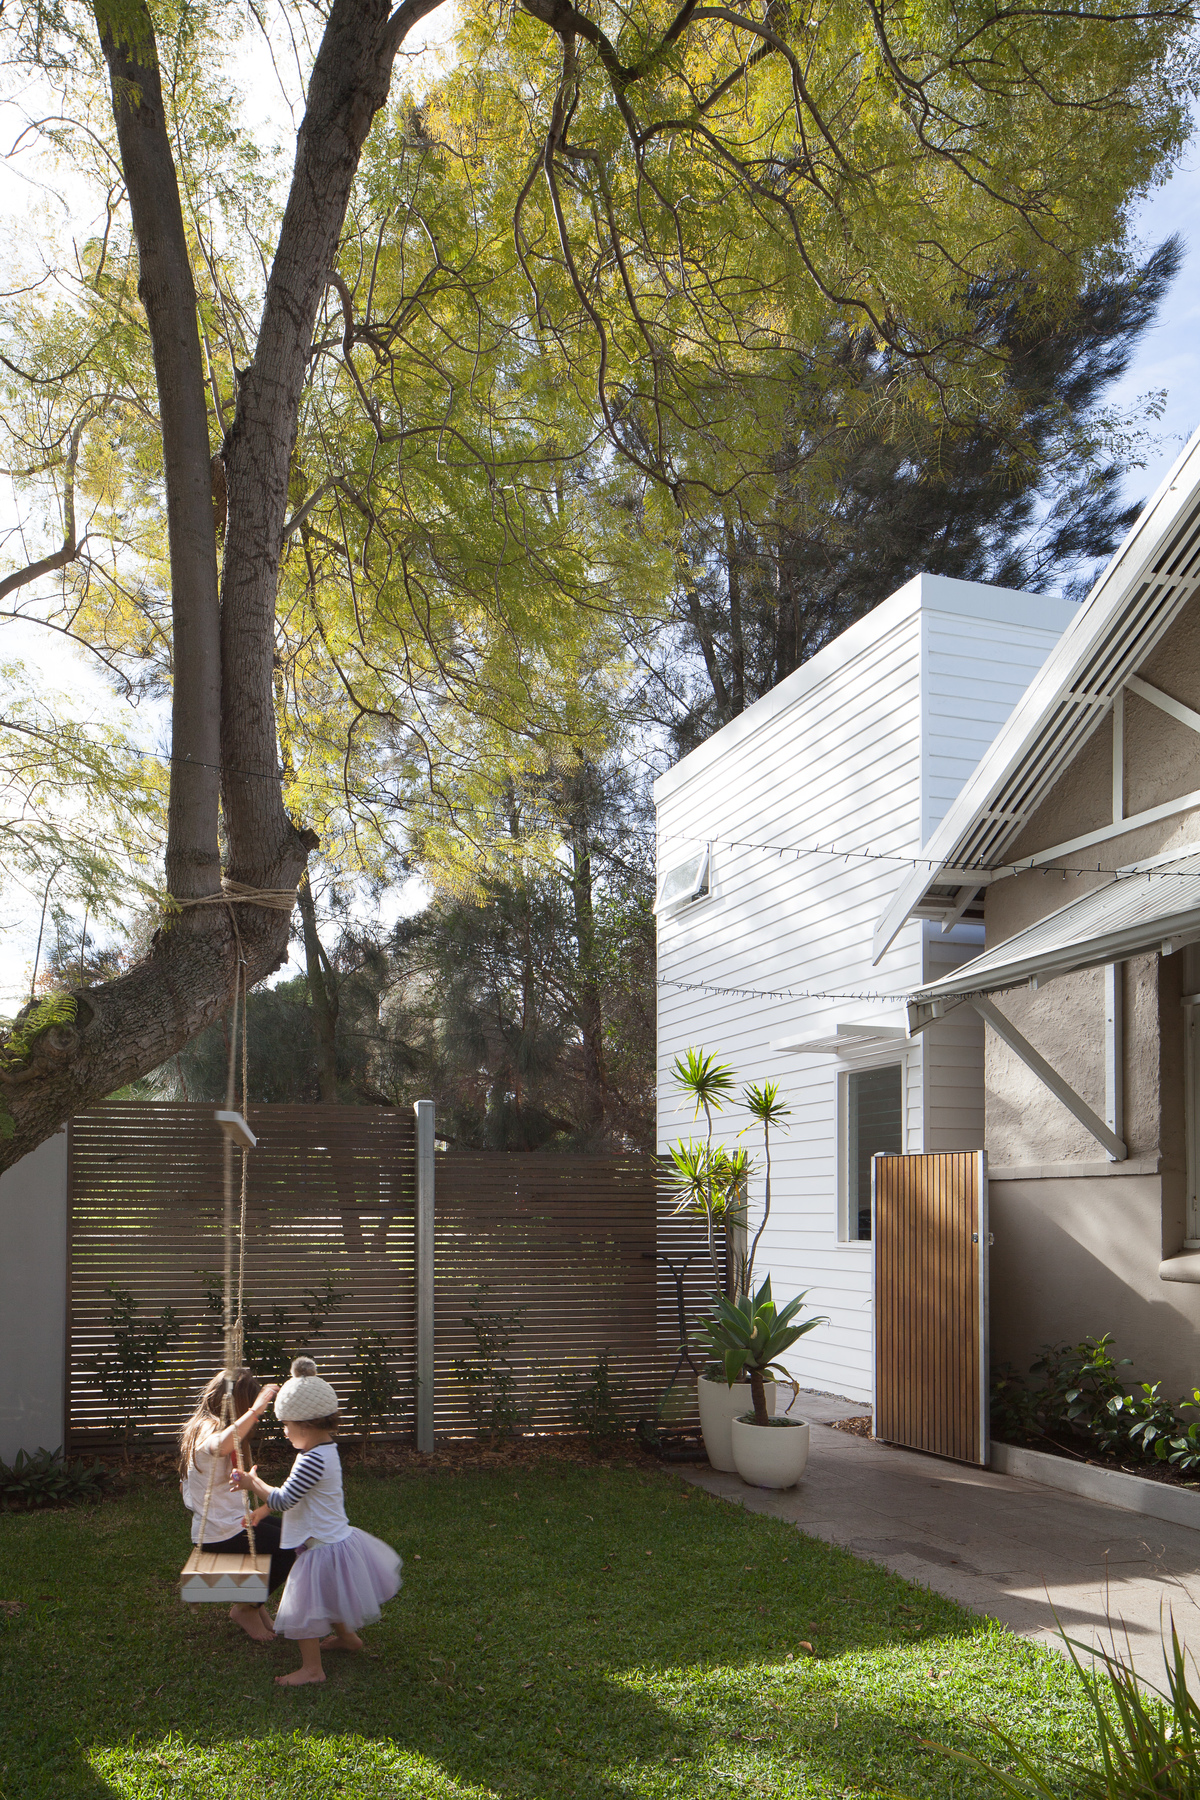 A White Box is 'Plugged' Into the Side of This Existing Home